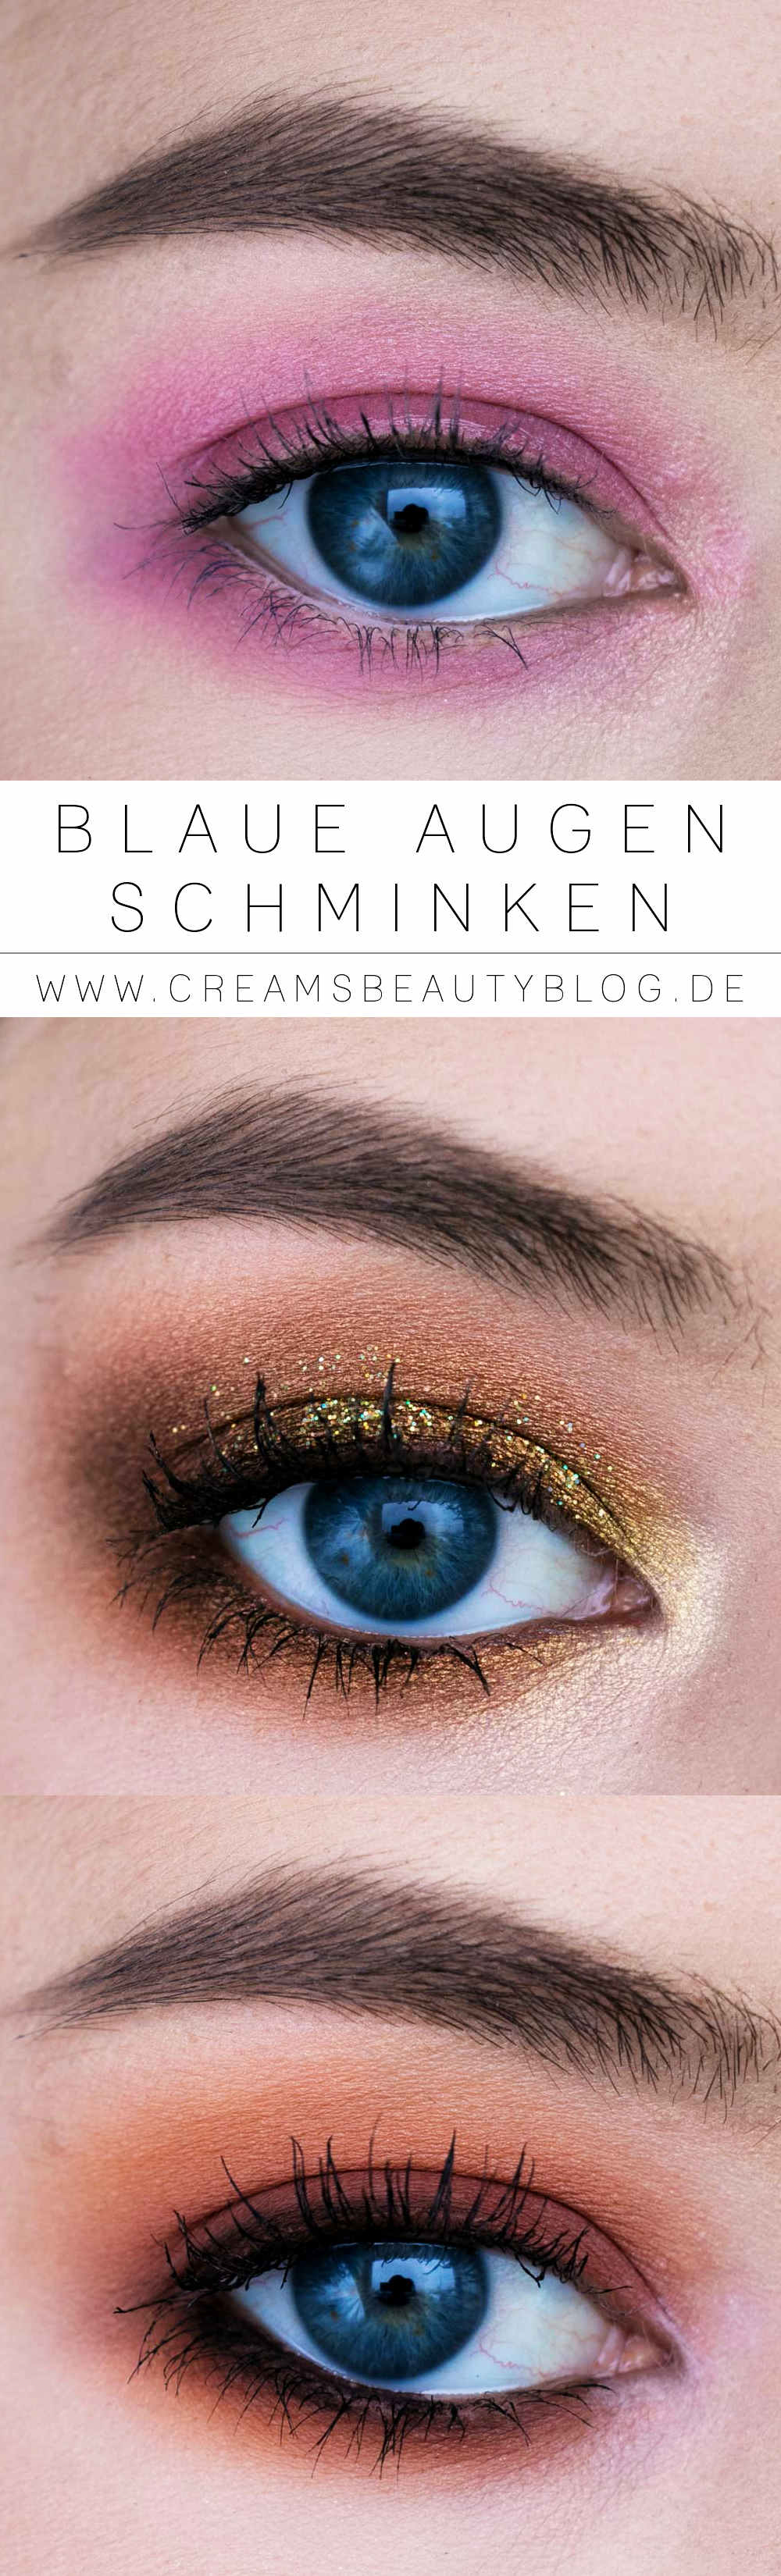 Blaue Augen Schminken Das Make Up Tutorial Creams Beauty Blog